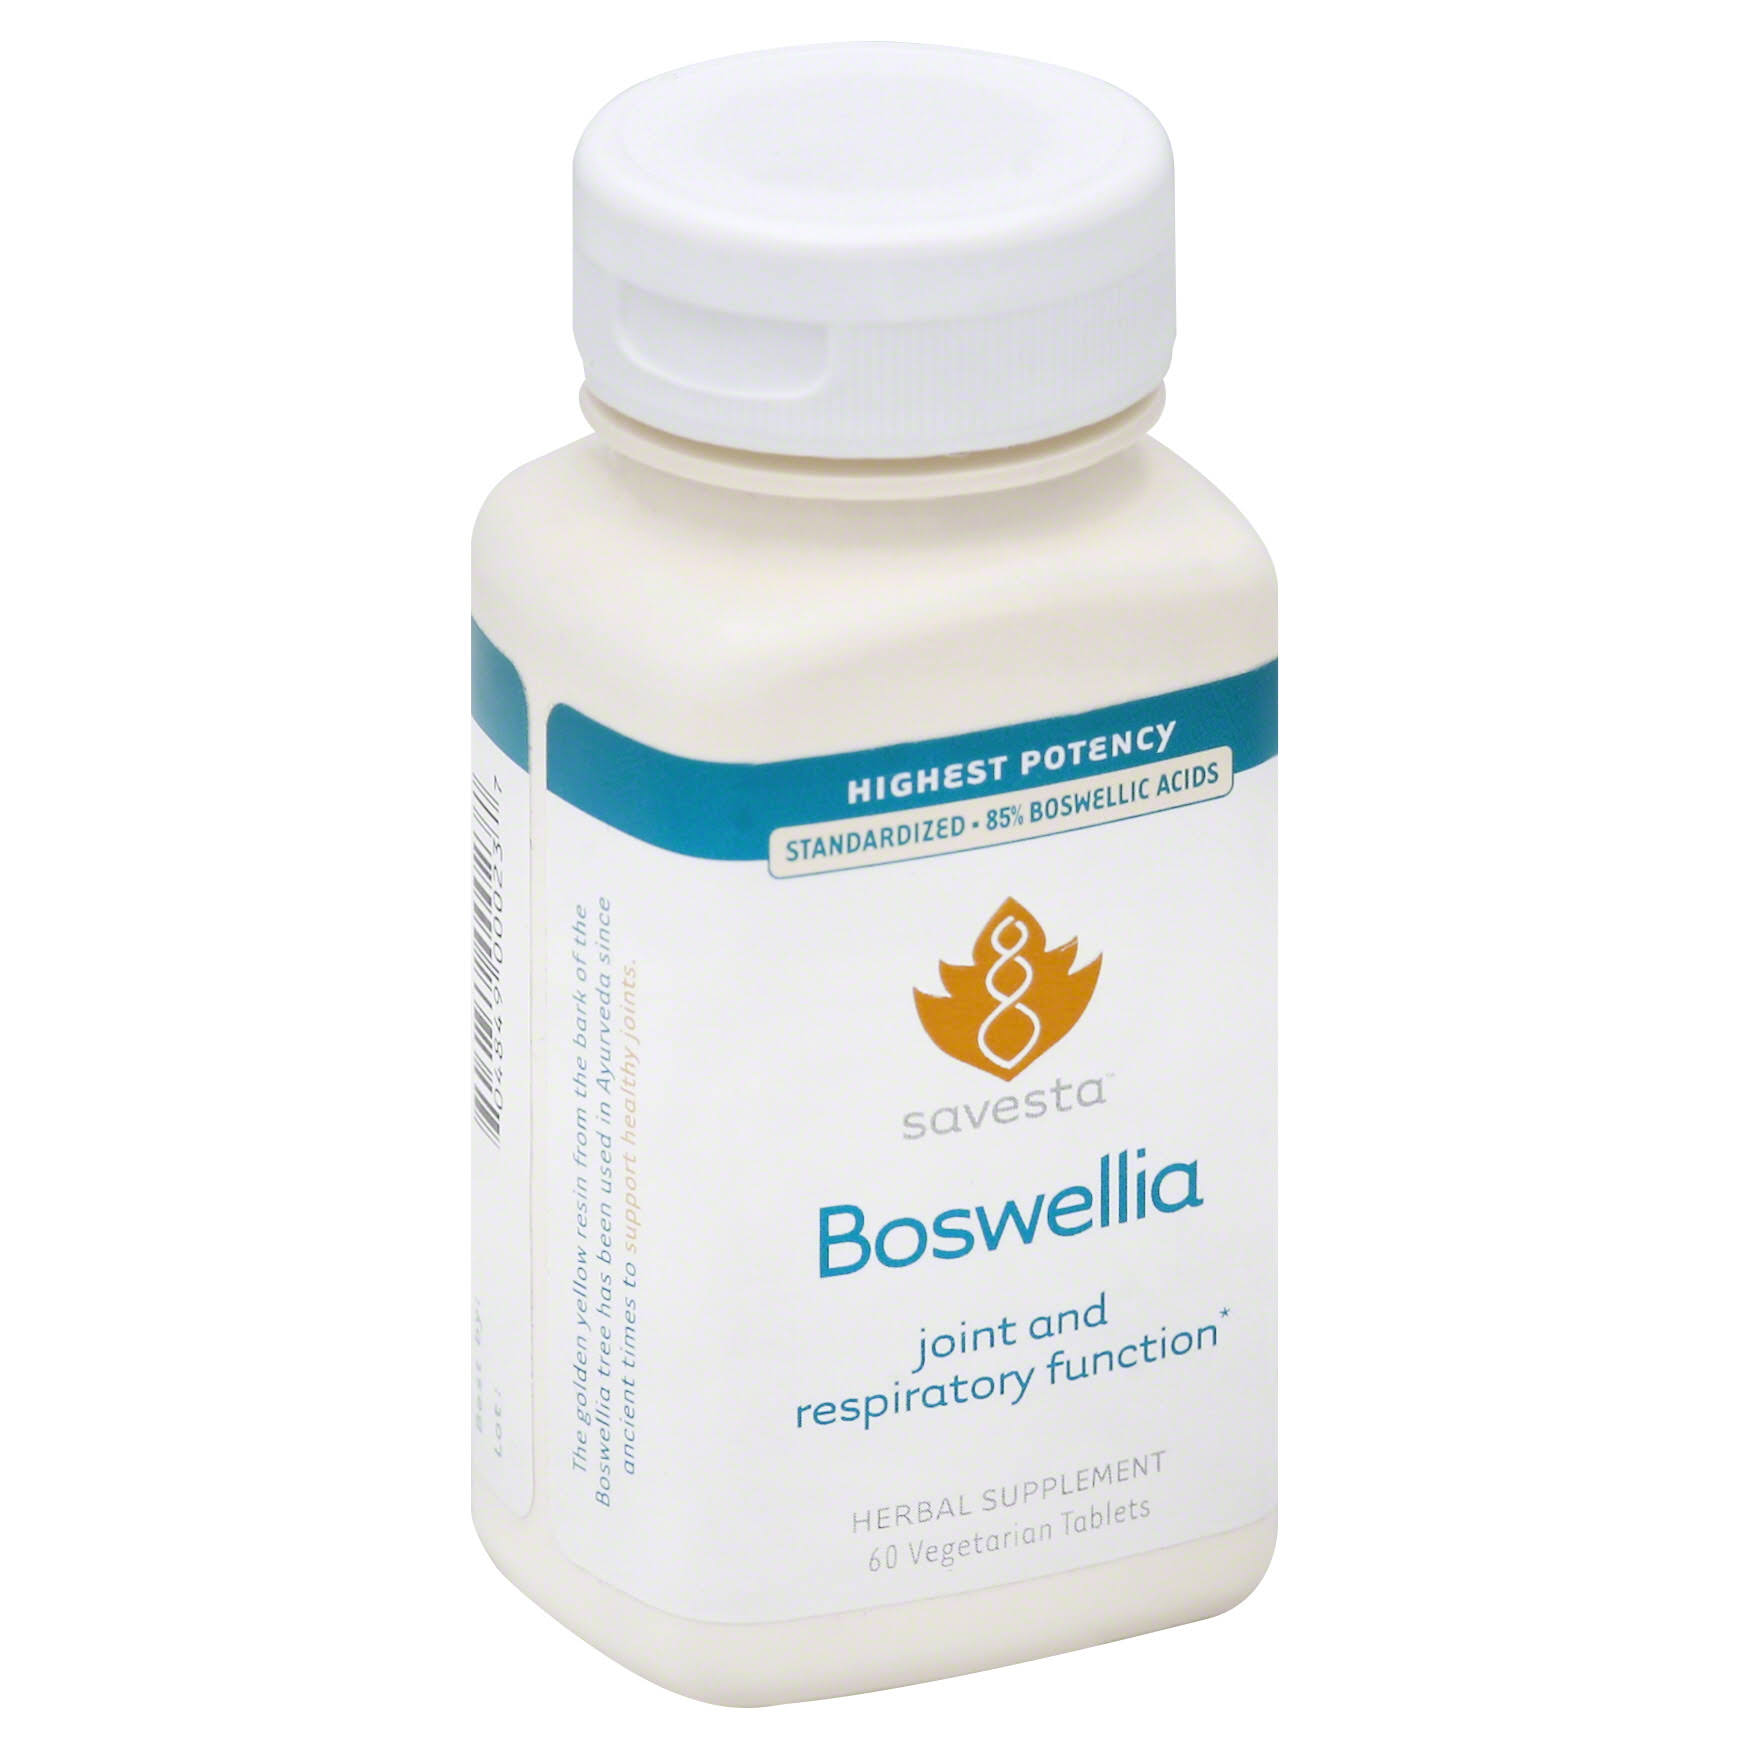 Avesta Boswellia Joint And Respiratory Function - 60 Tablets